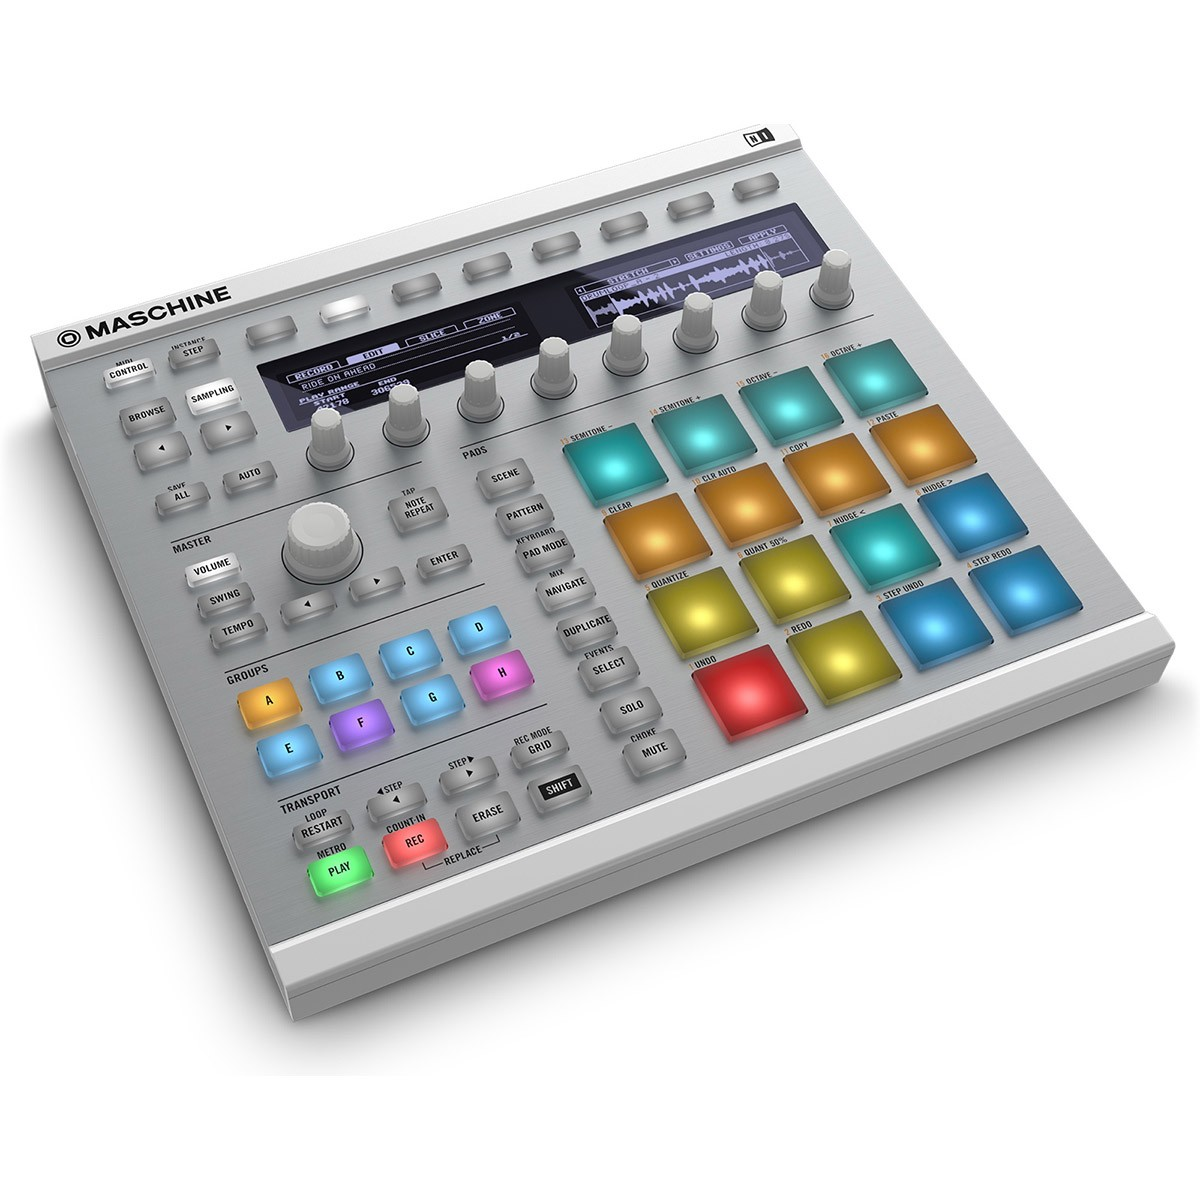 drum machine native instruments maschine mkii review. Black Bedroom Furniture Sets. Home Design Ideas